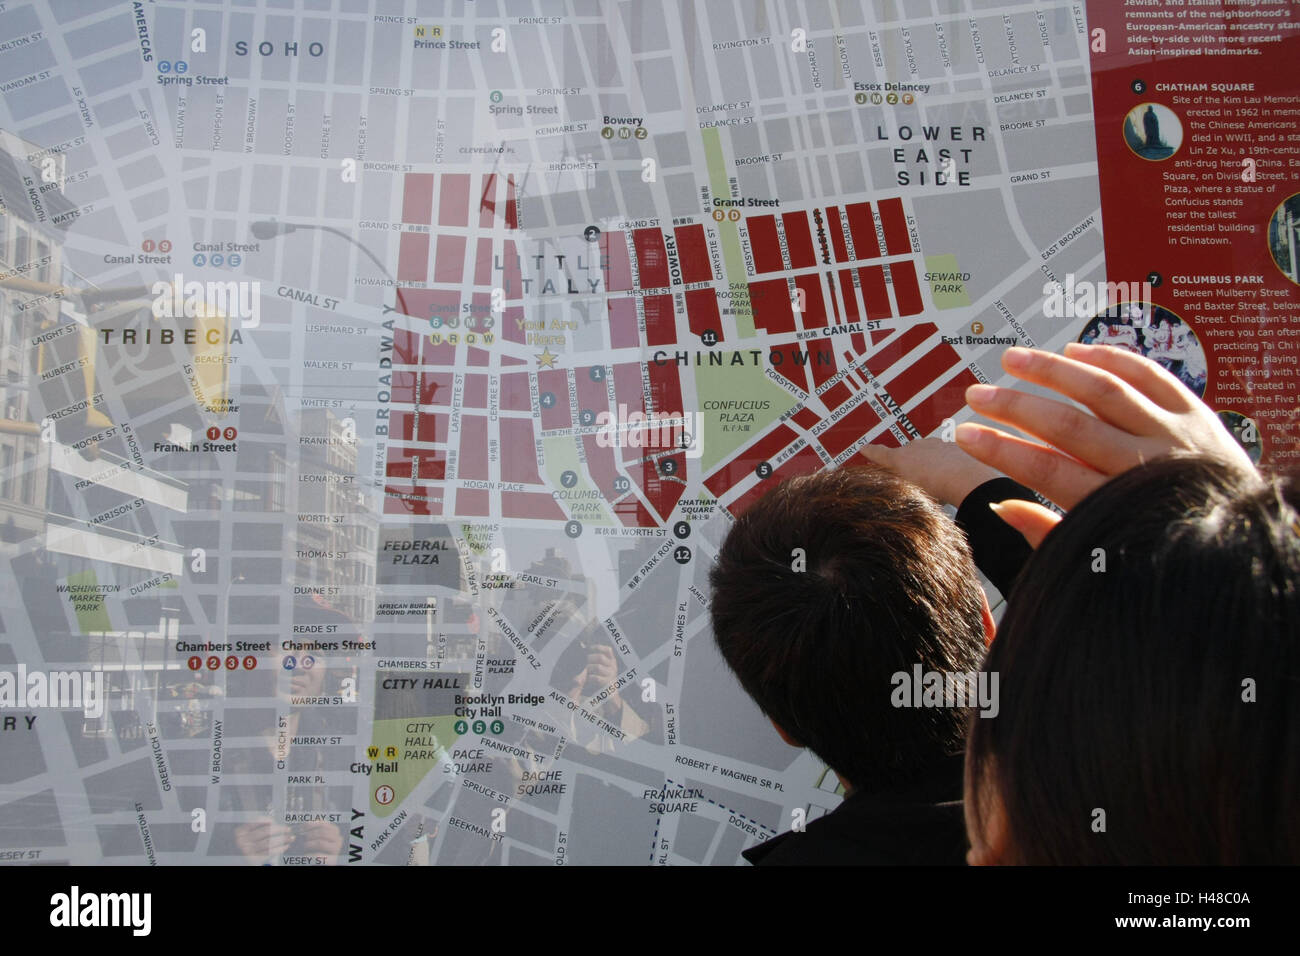 The USA New York City Manhattan Little Italy Chinatown City - Usa map in detail